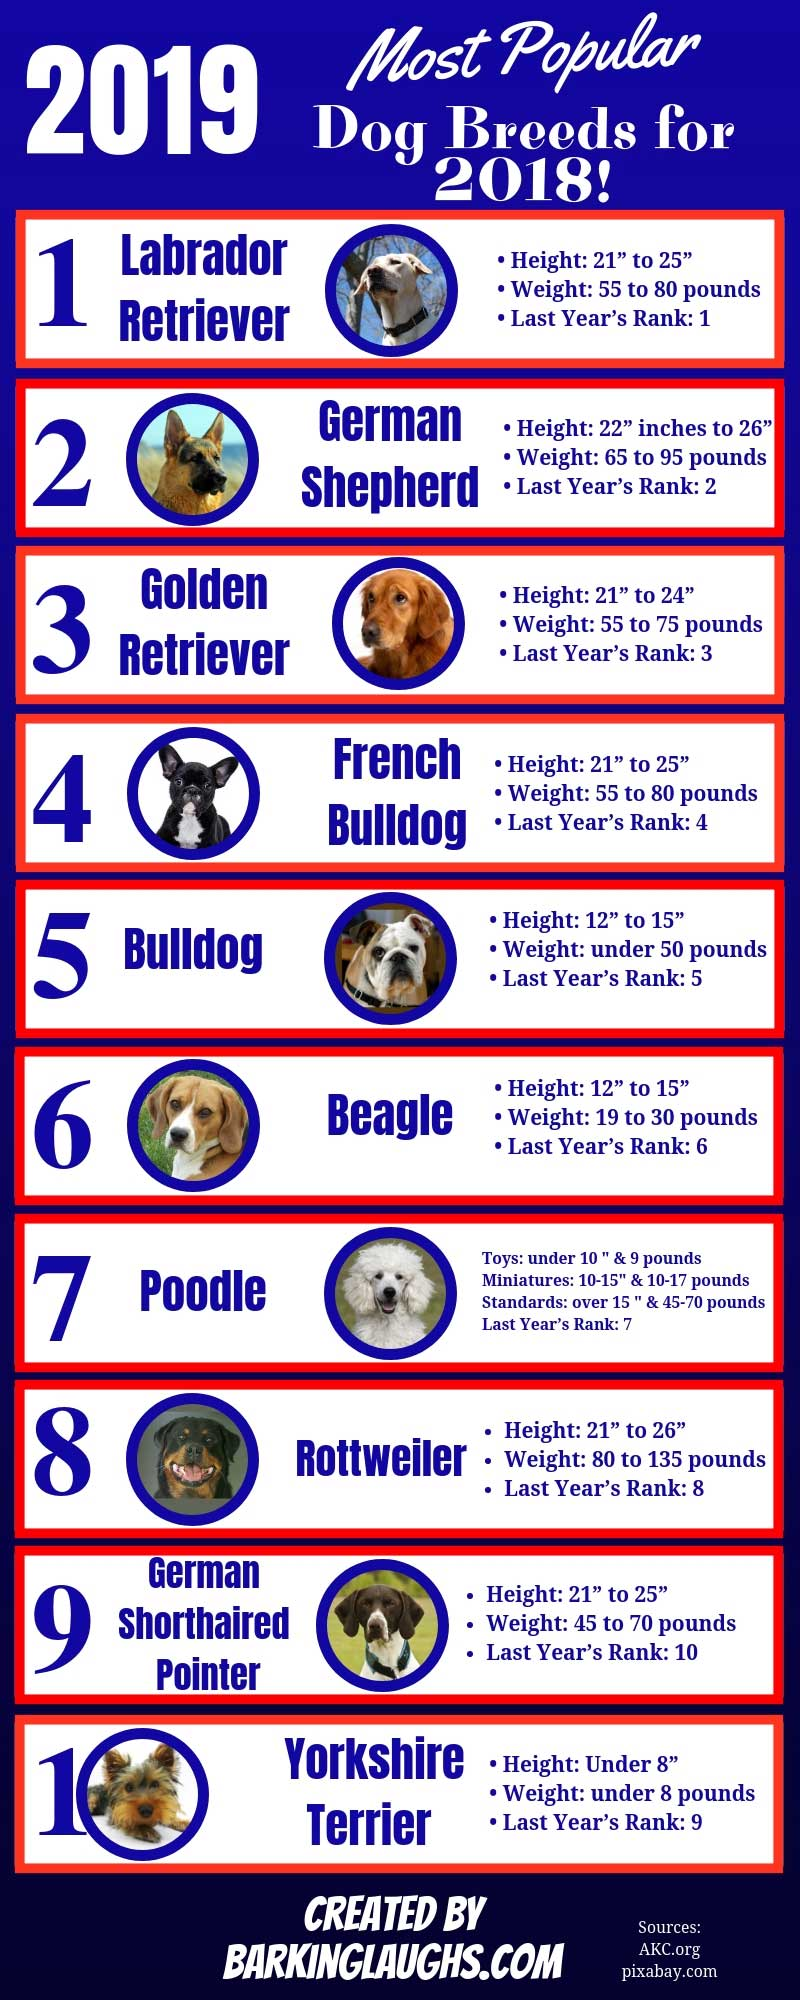 2019 the top ten dog breeds in the US for 2018!